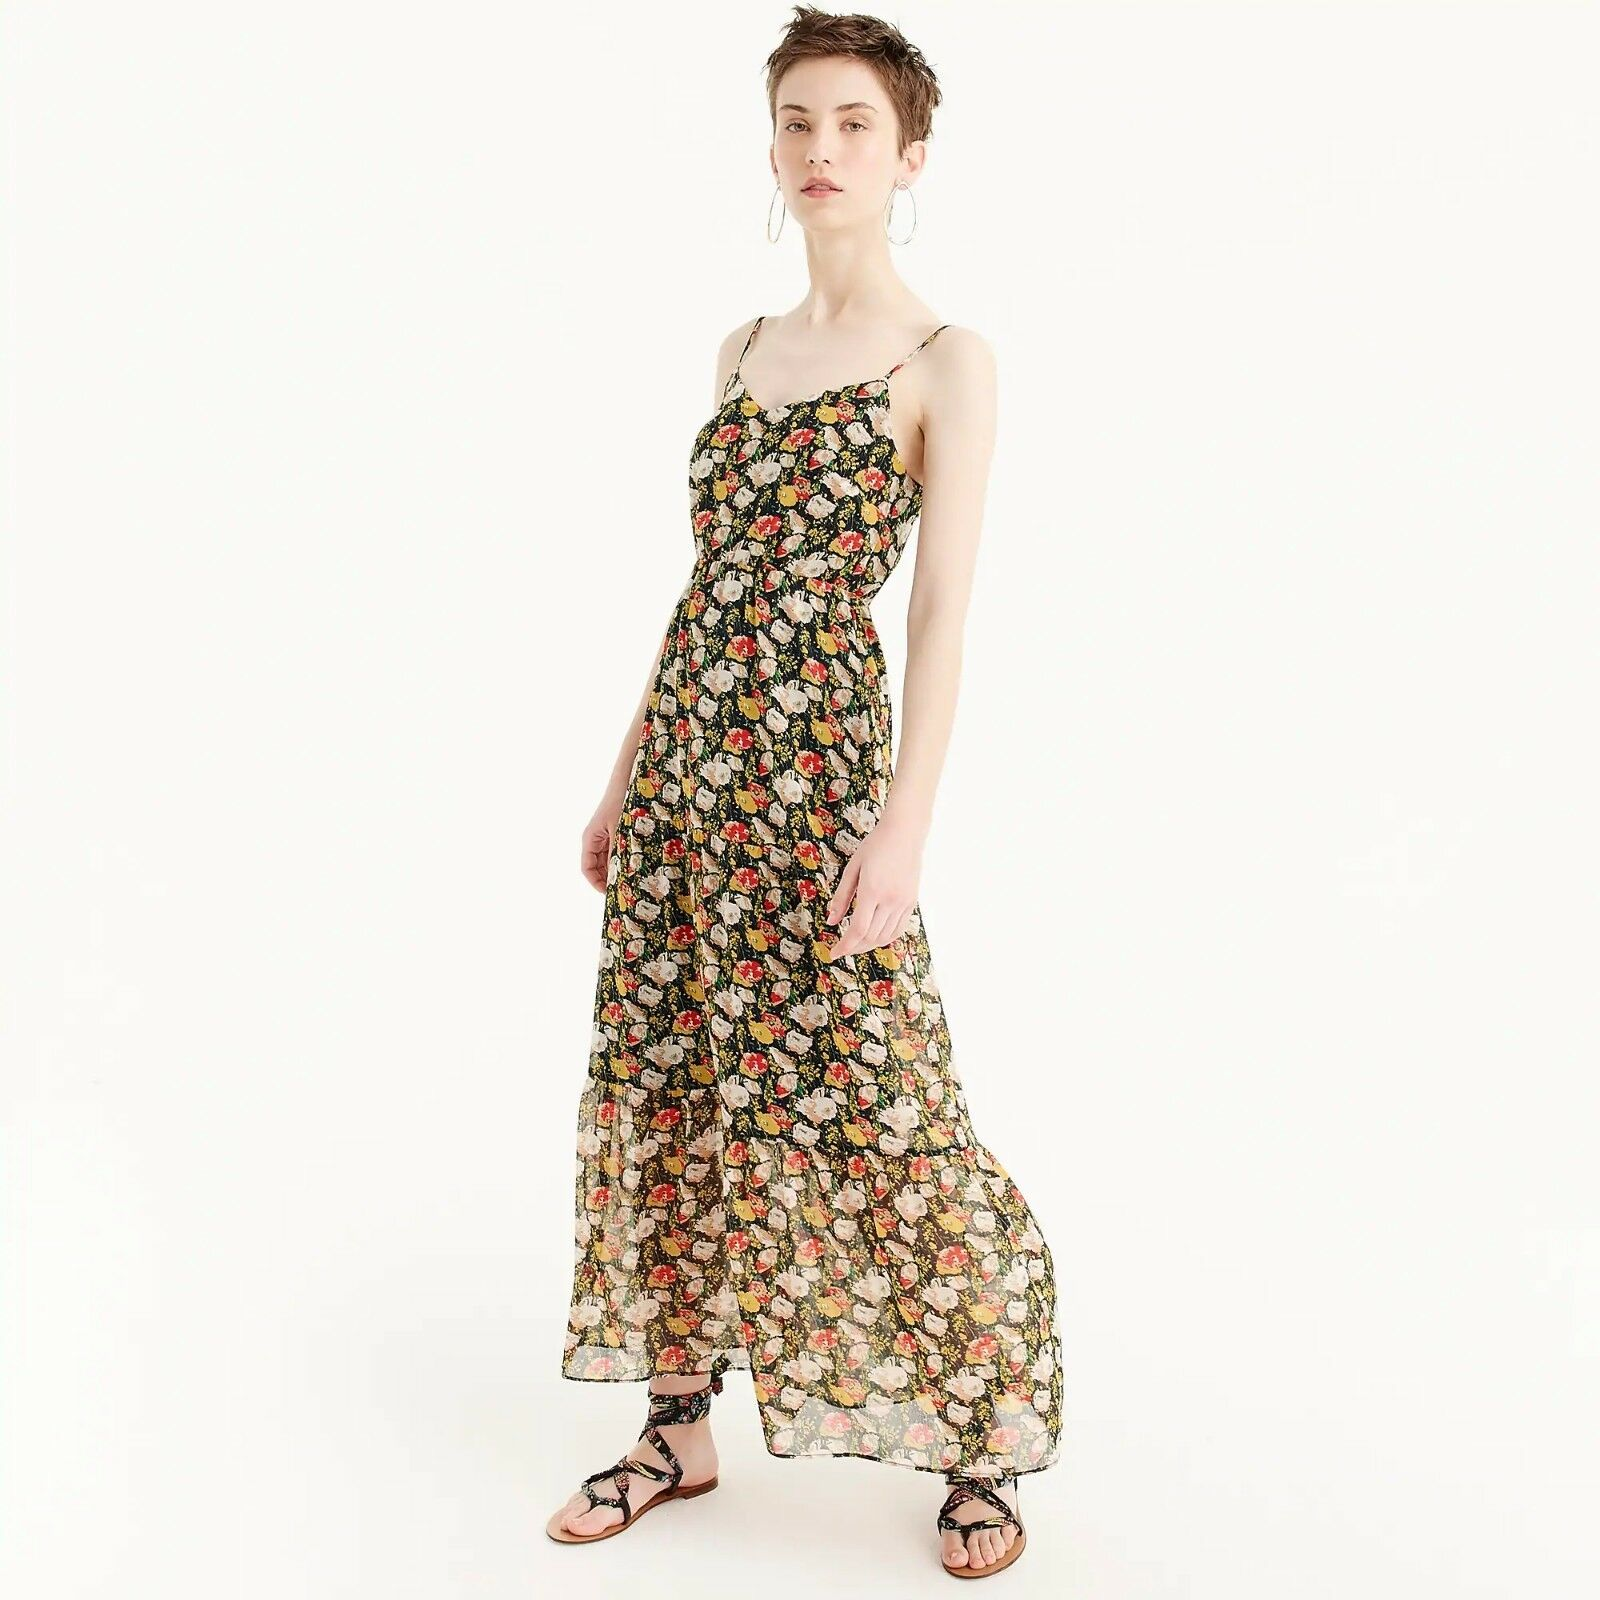 NWT J.Crew Mercantile Tierot Maxi Dress in Sweet Pea Floral - rot Gold - Größe 12